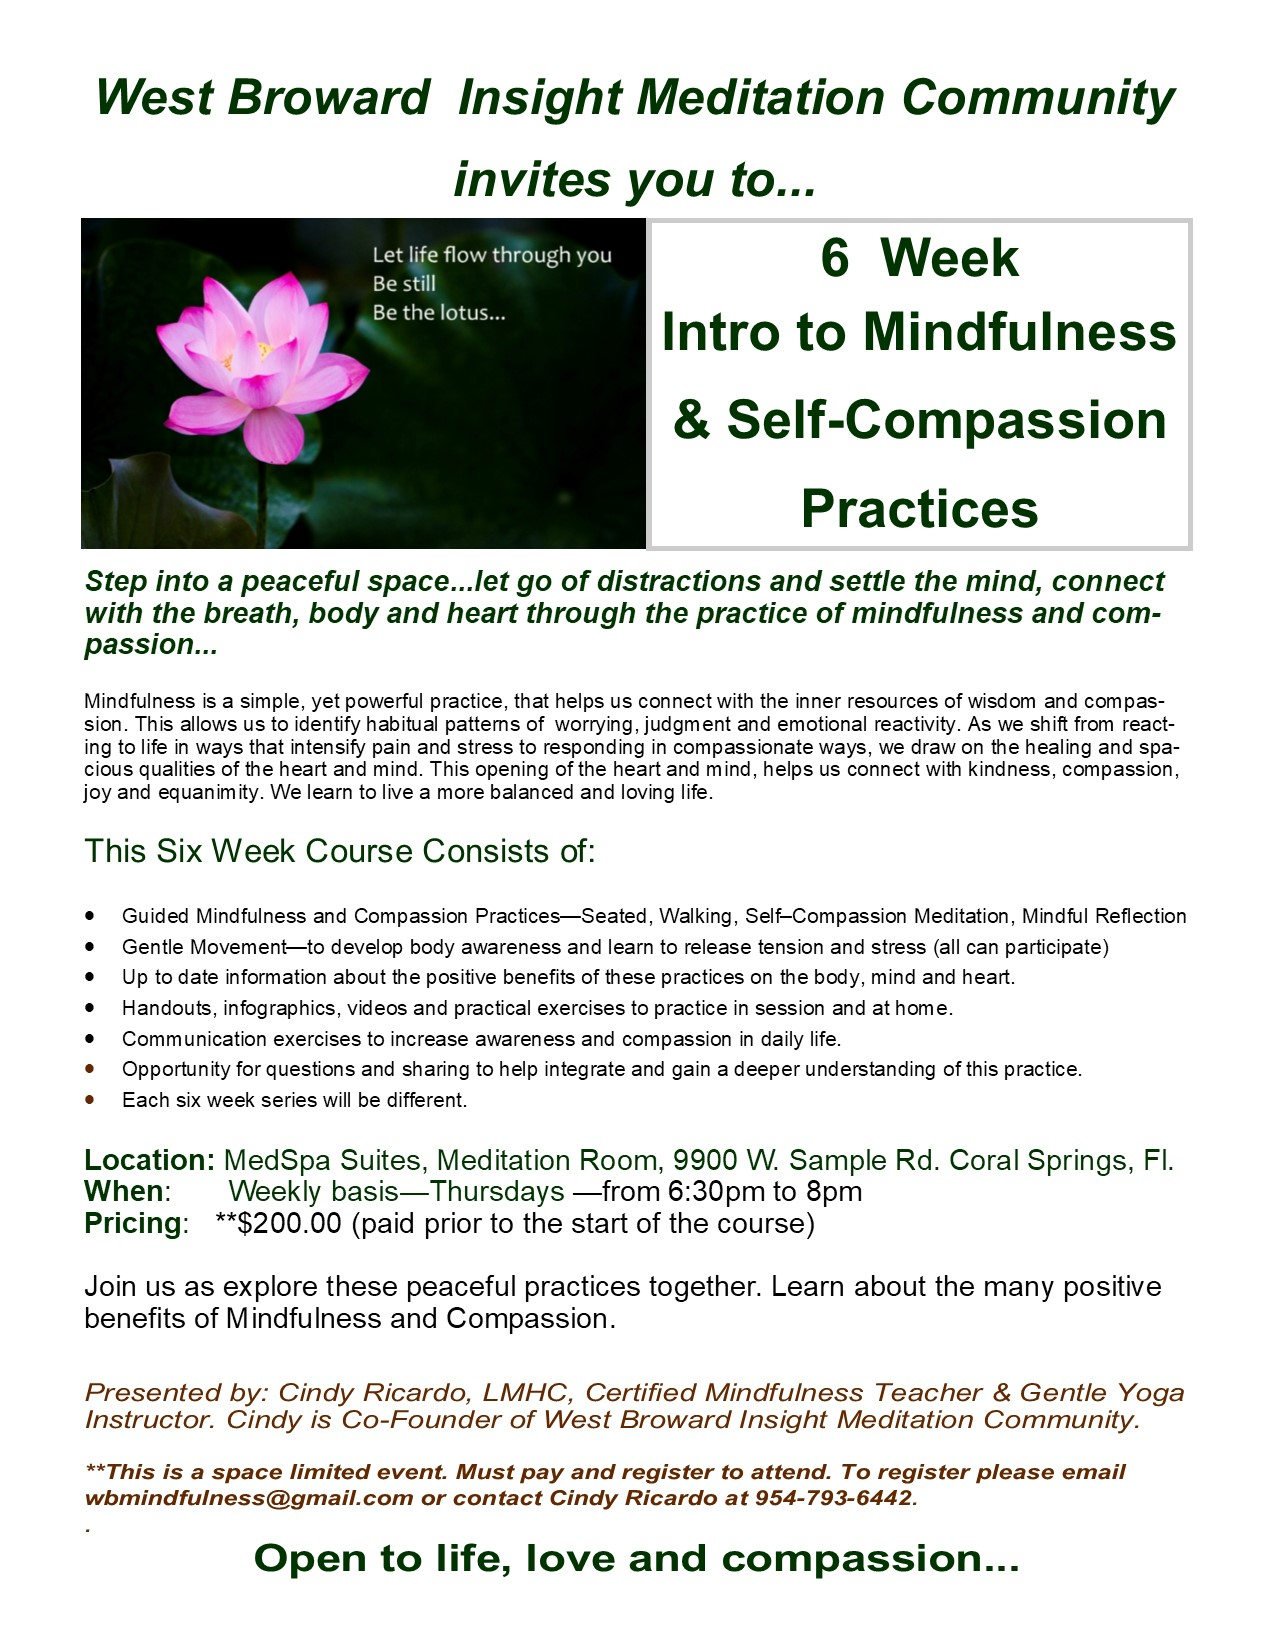 6 Week Intro to Mindfulness and Compassion Practices